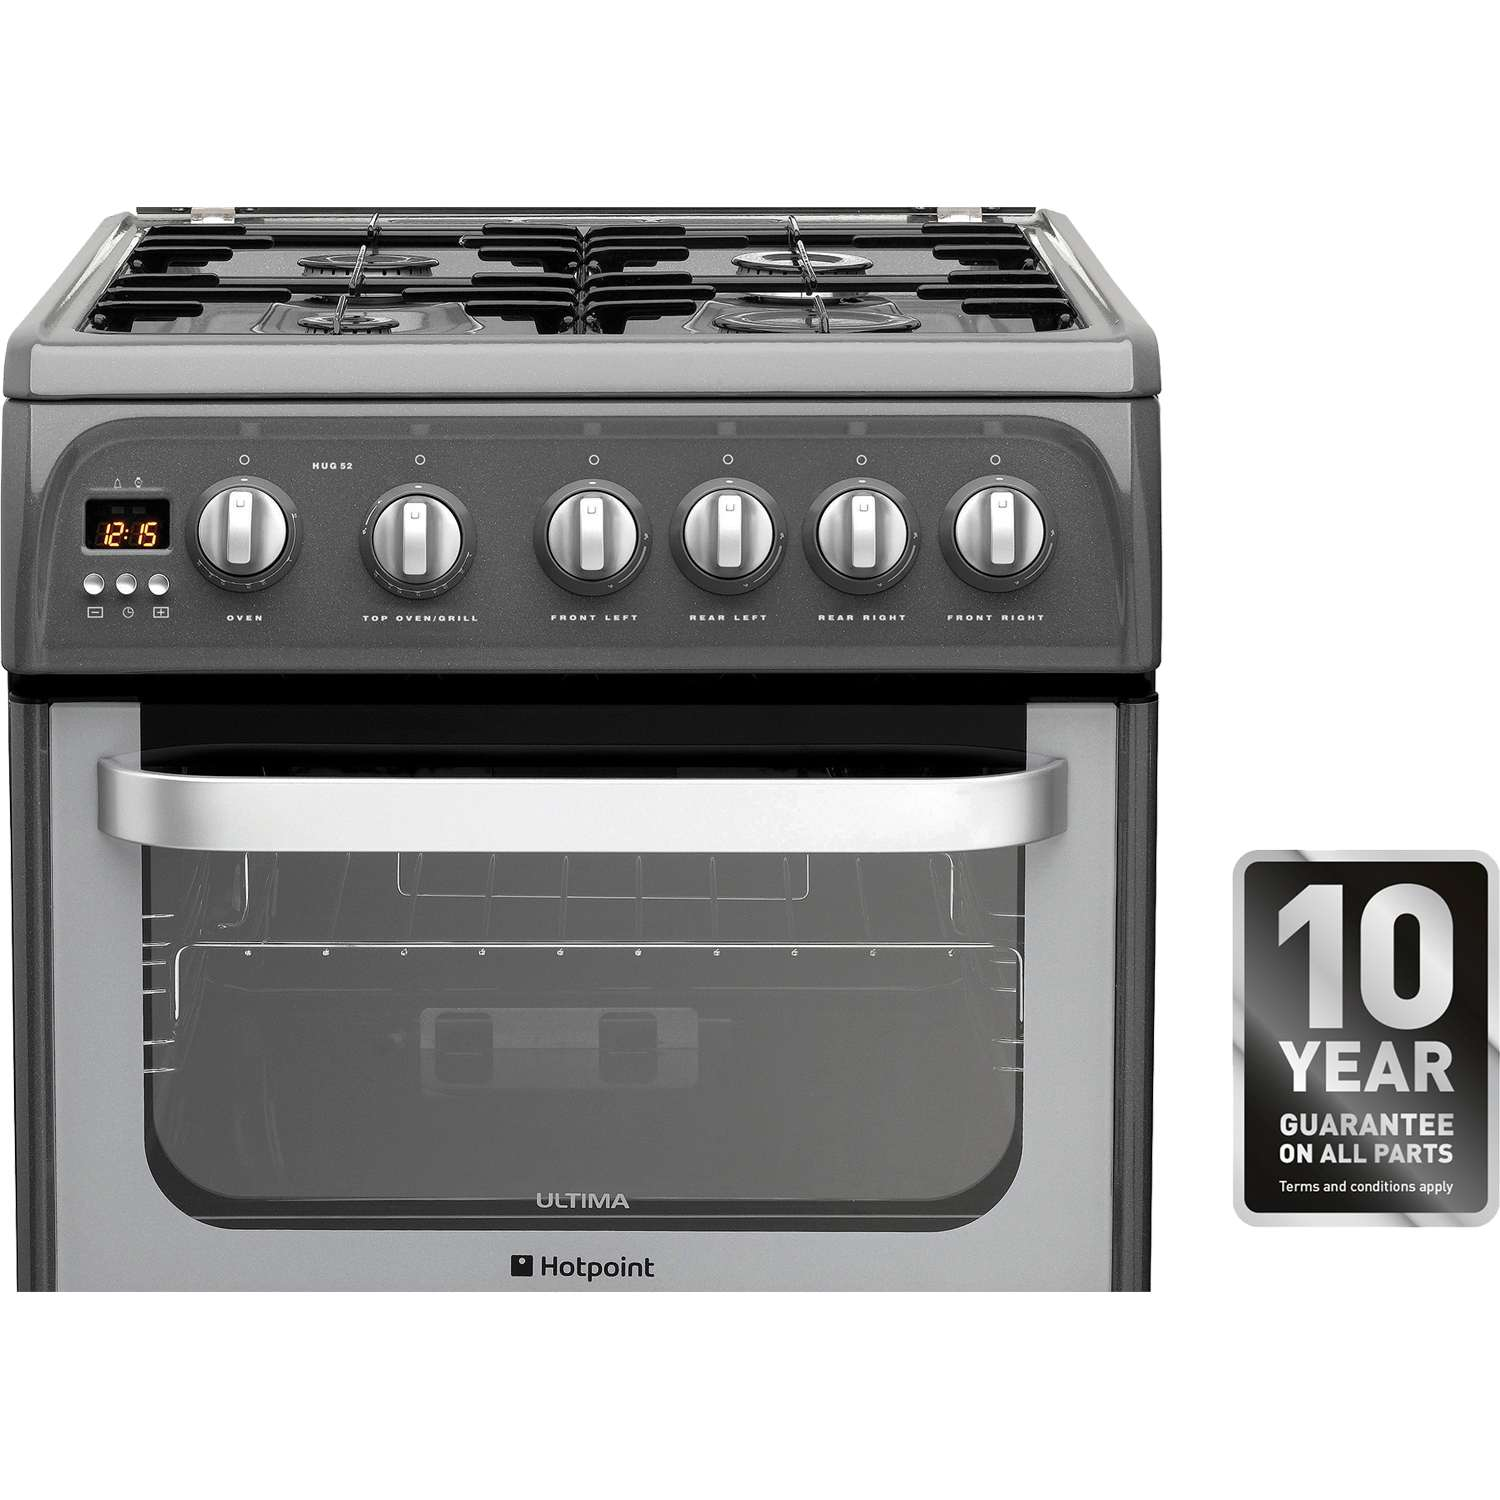 hotpoint hug52g freestanding double oven 4 burner gas. Black Bedroom Furniture Sets. Home Design Ideas